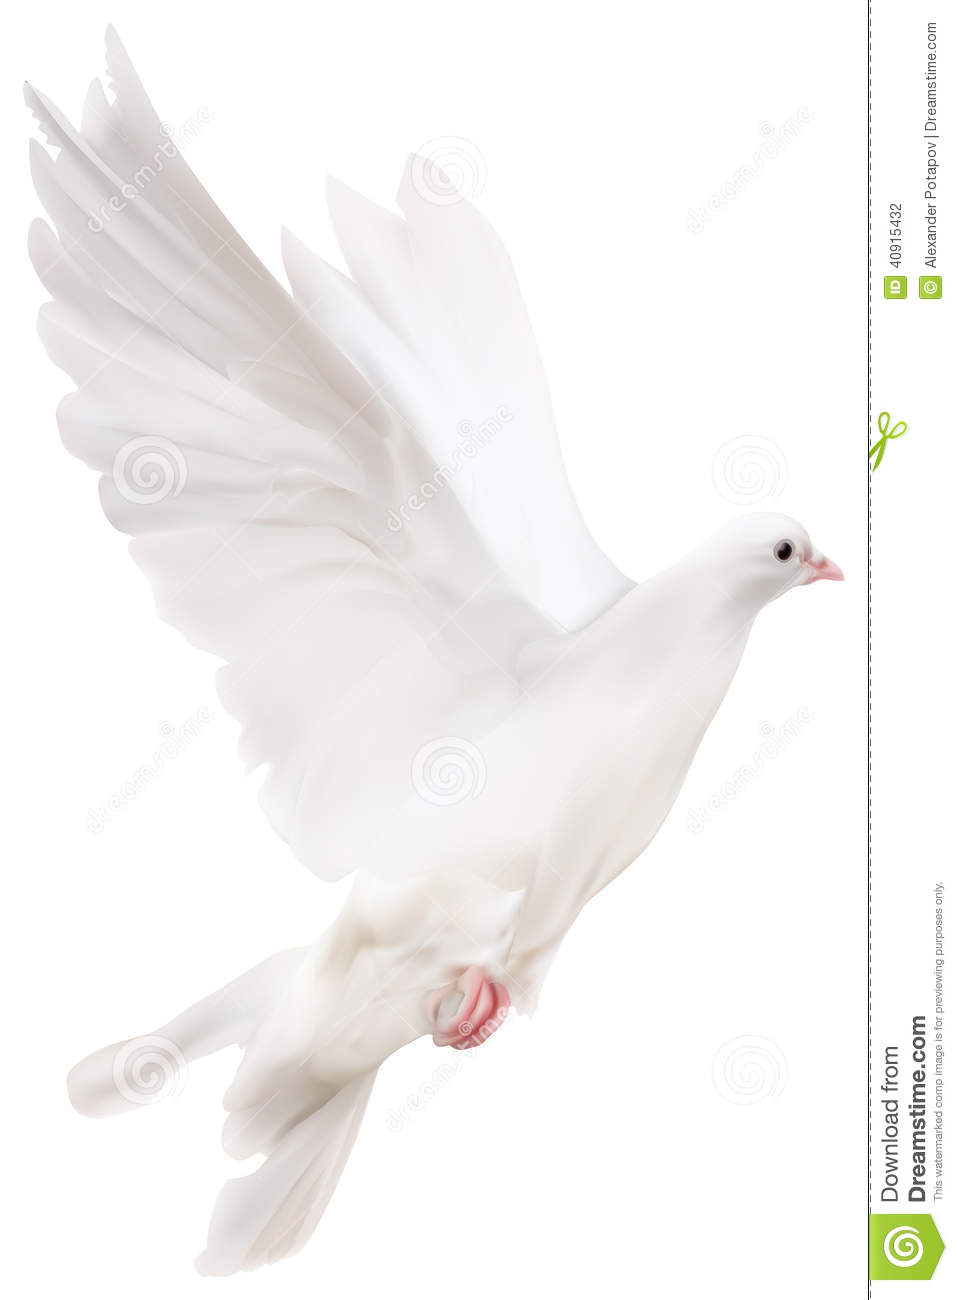 Pigeon illustration - photo#13